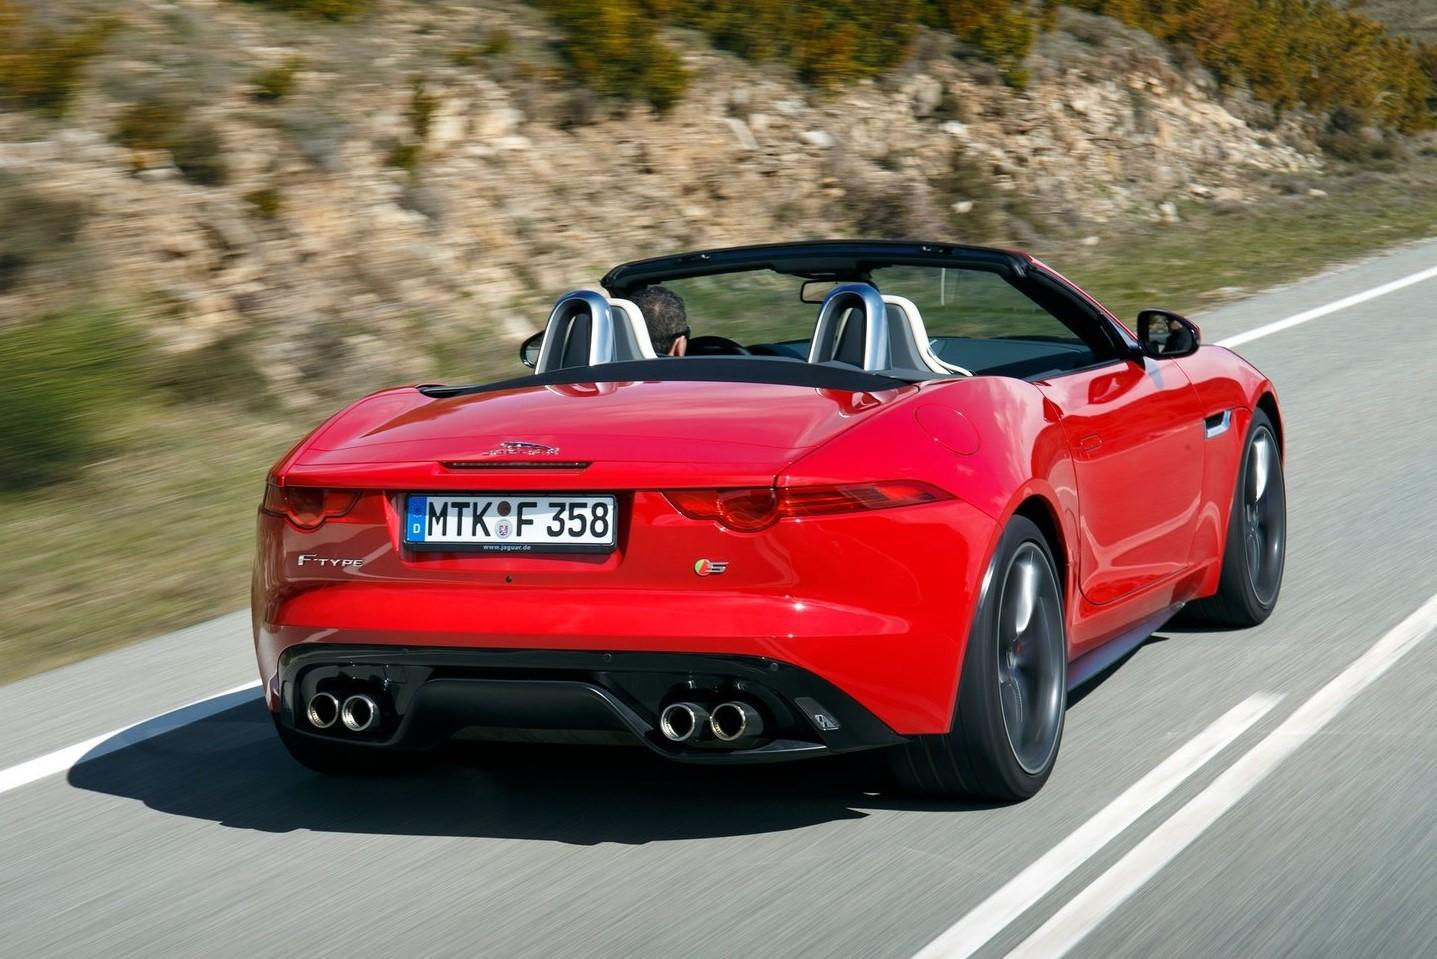 Jaguar F-type V8 S Convertible (2014)